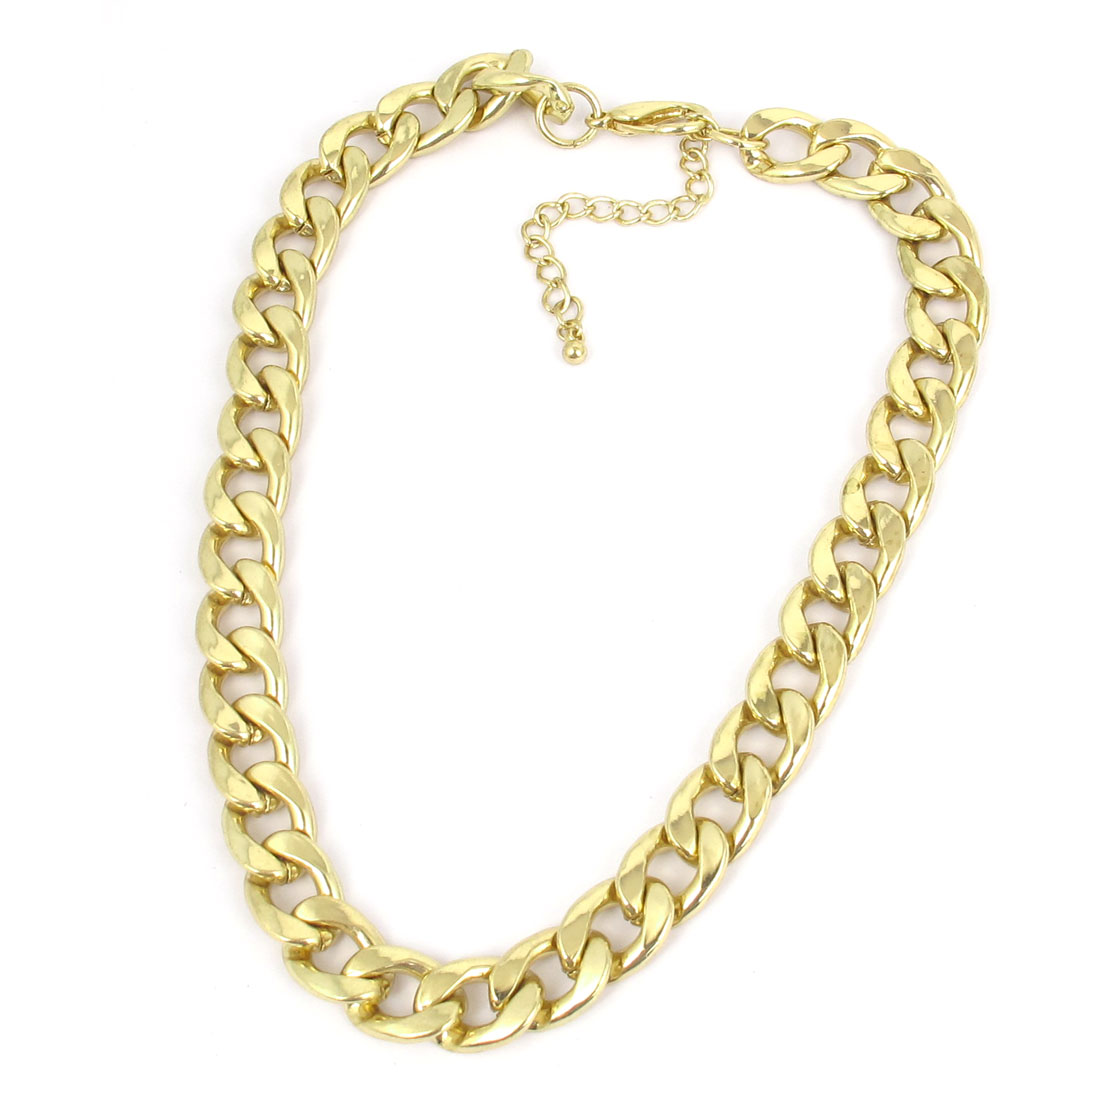 Unisex Metal Thick Chain Strip Link Design Lobster Buckle Necklace Neckwear Collar Gold Tone